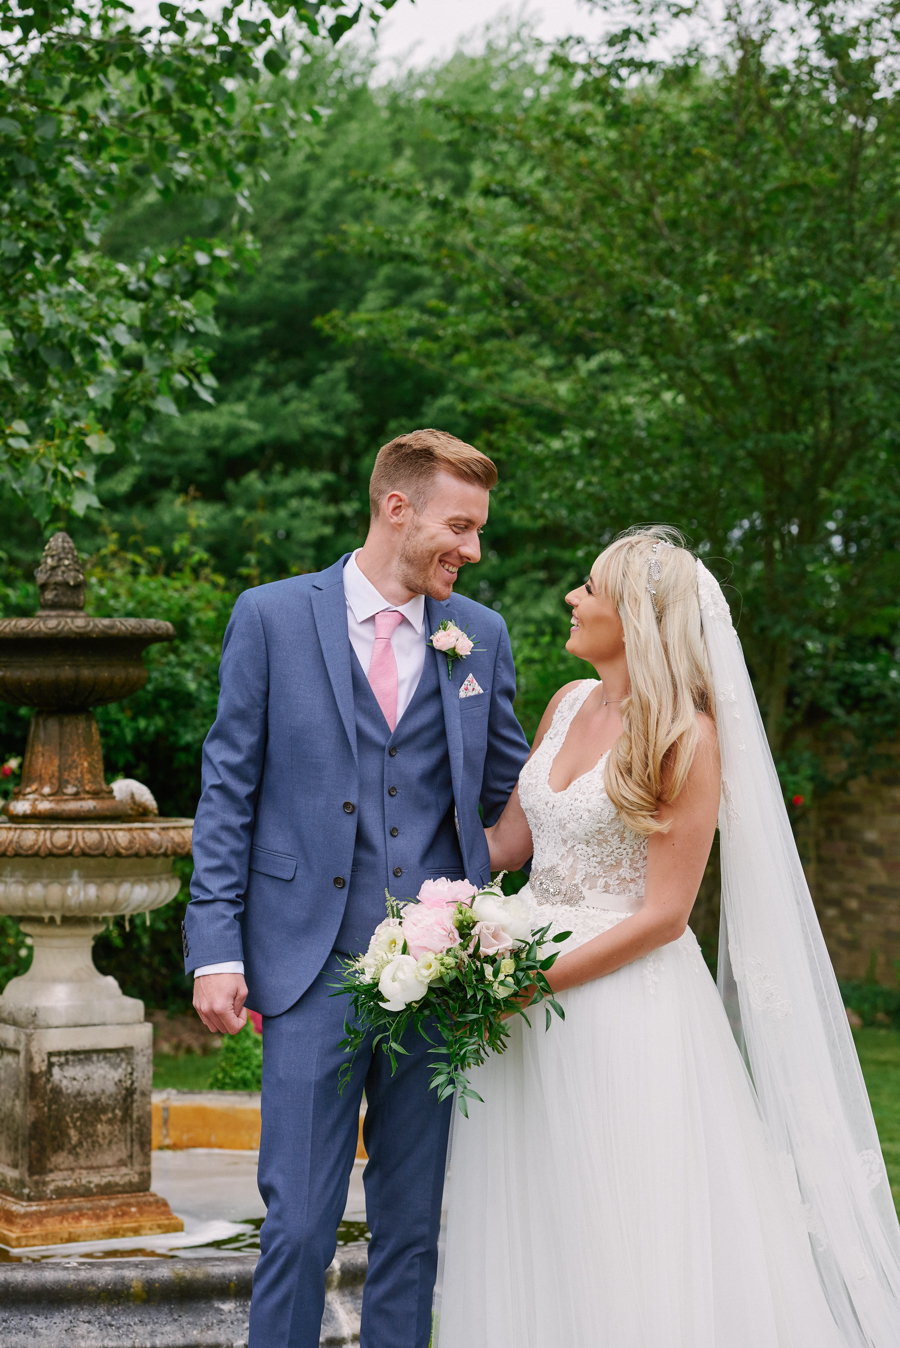 Penny and Ben's funfair wedding at Marleybrook with Rose Images (27)